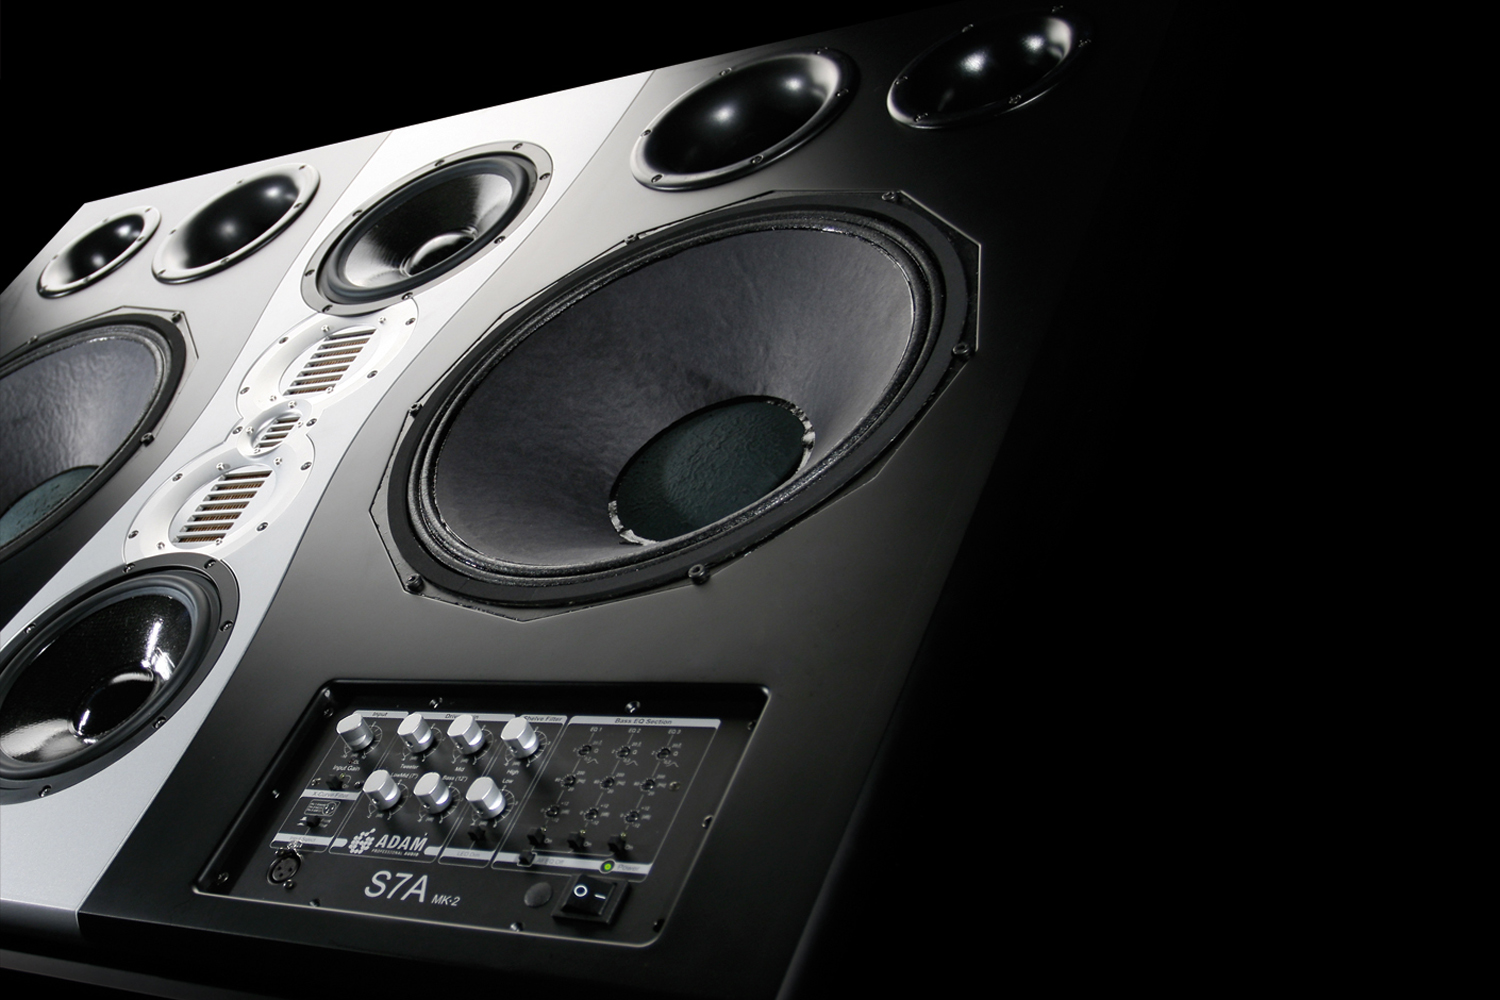 Adam Audio S7a Mk2 Active Studio Monitor Main Subwoofer Filter Crossover 11 90 Hz Frequency Circuit Free Picture